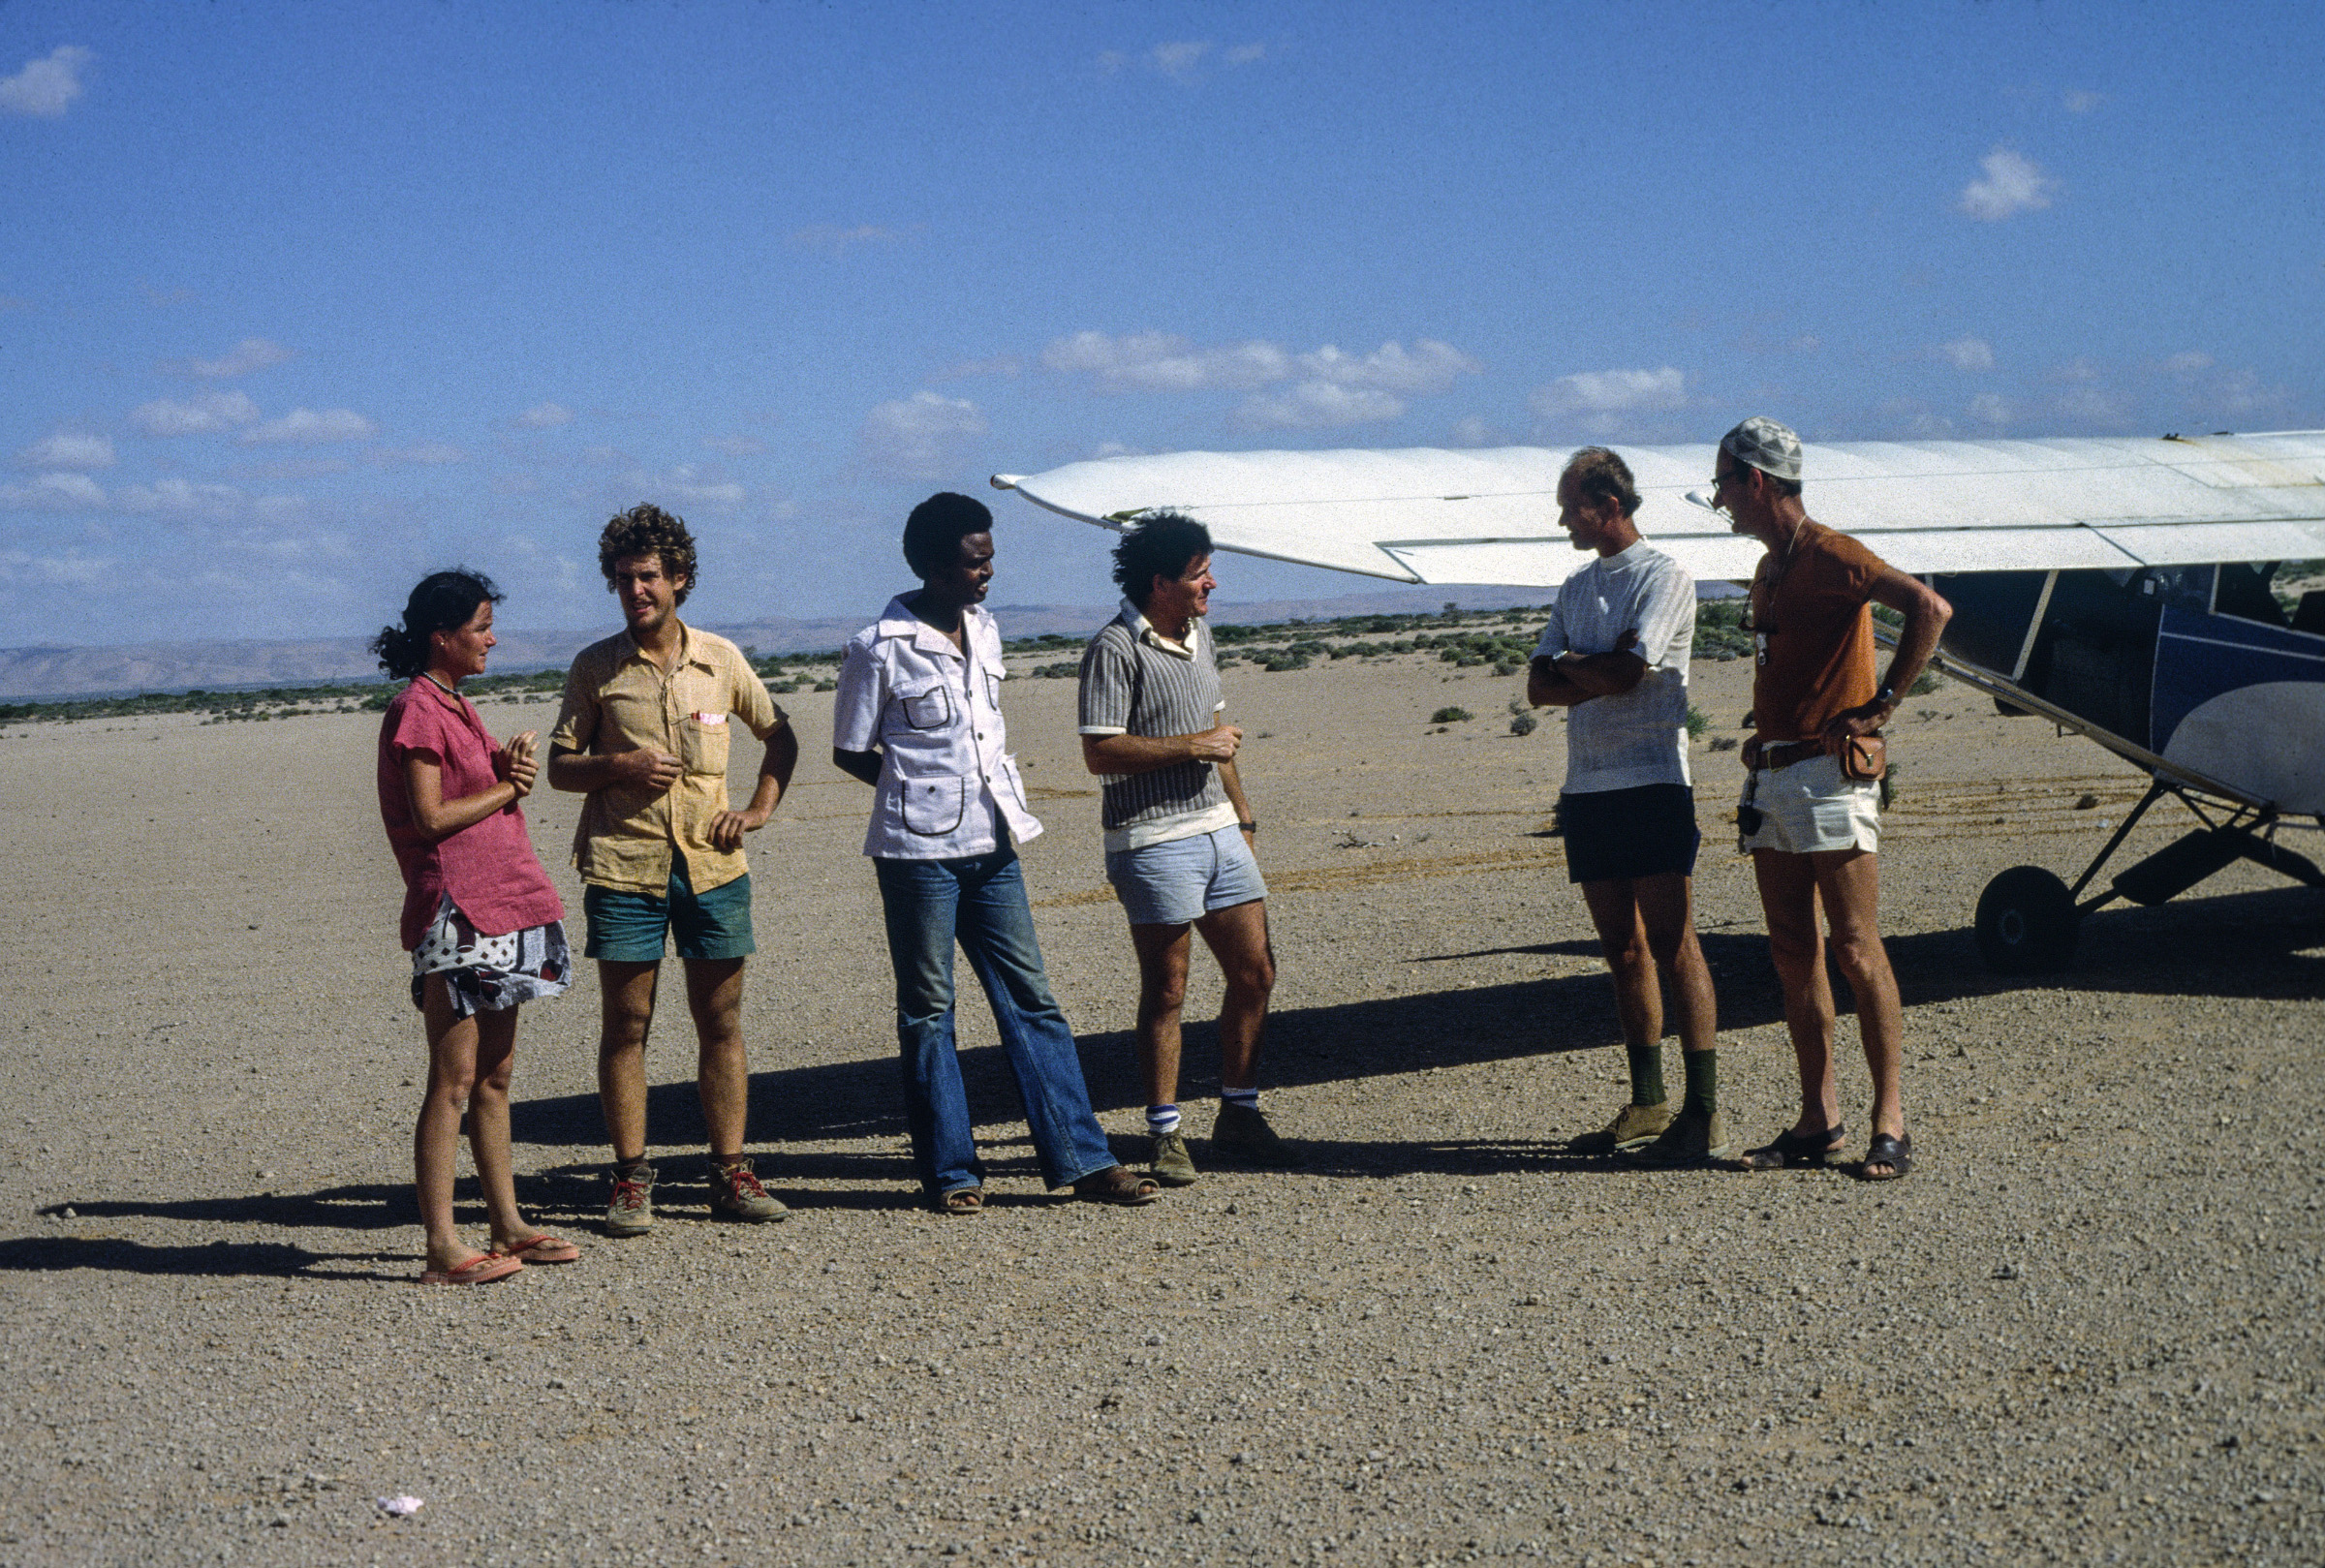 Watson and his researchers stand on a tarmac in Somalia. Archival Photo.